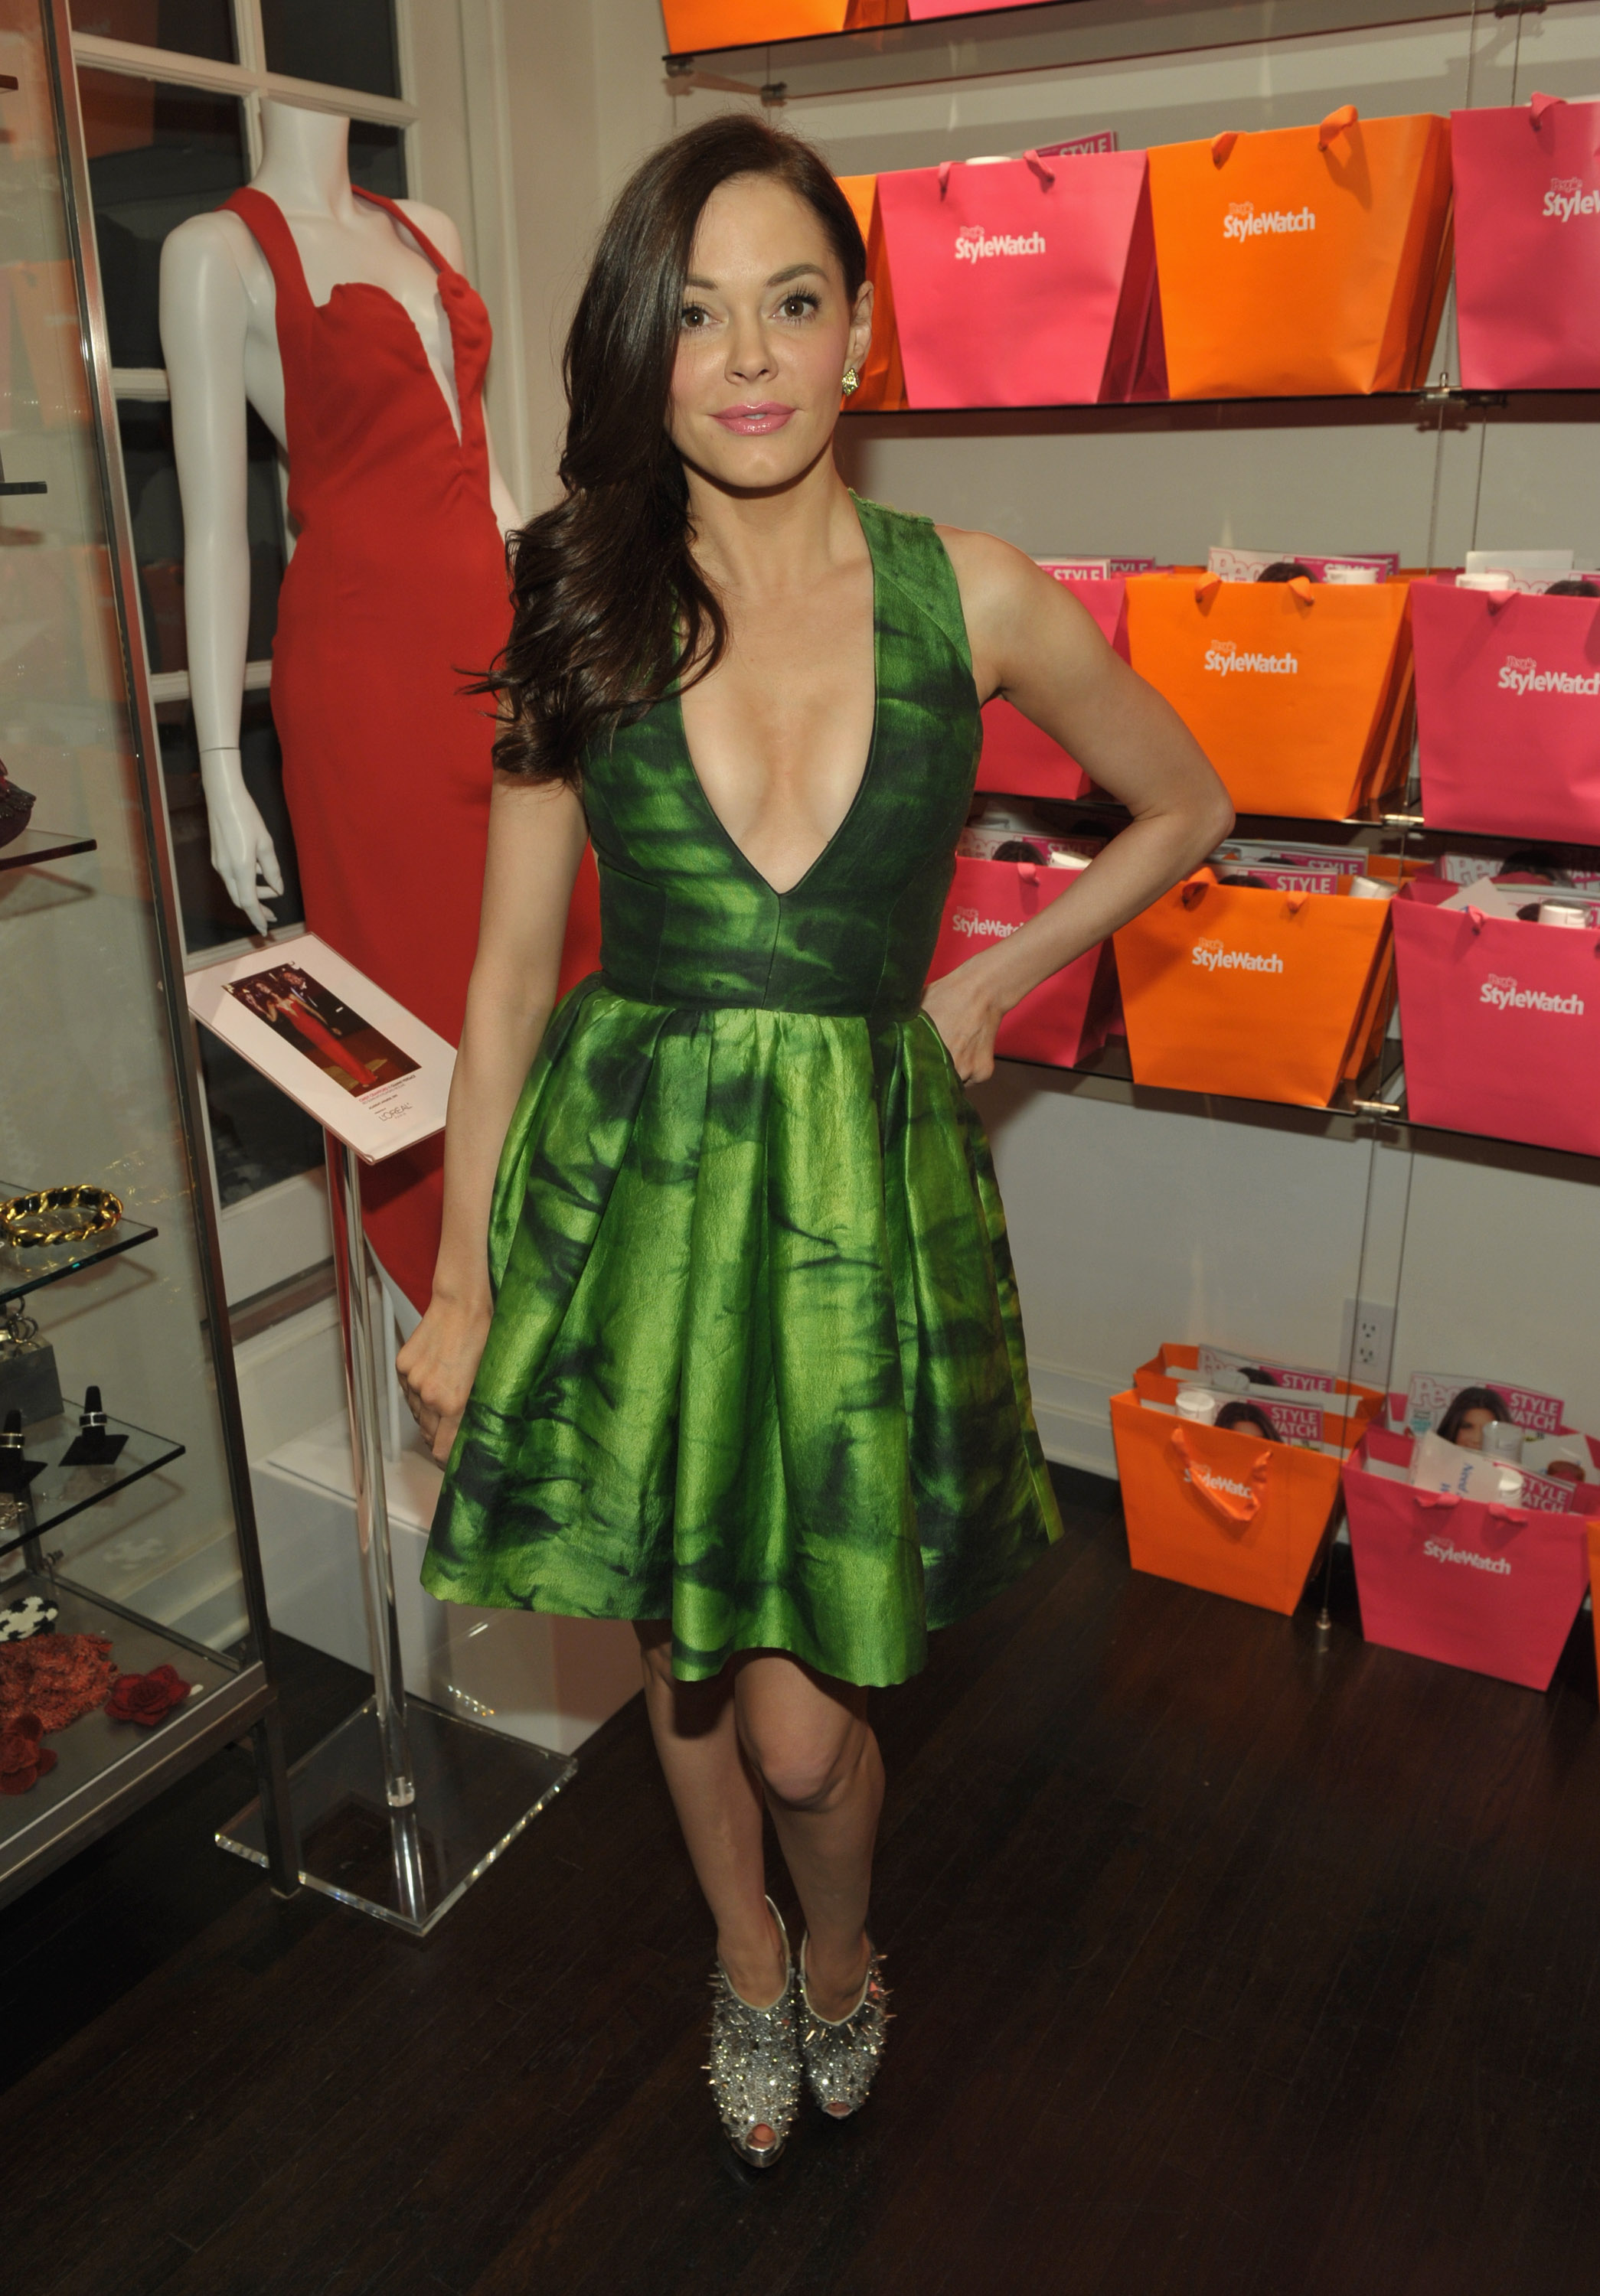 751979139_Rose_McGowan_People_StyleWatch_A_Night_of_Red_Carpet_Style_in_LA_January_27_2011_39_122_109lo.jpg